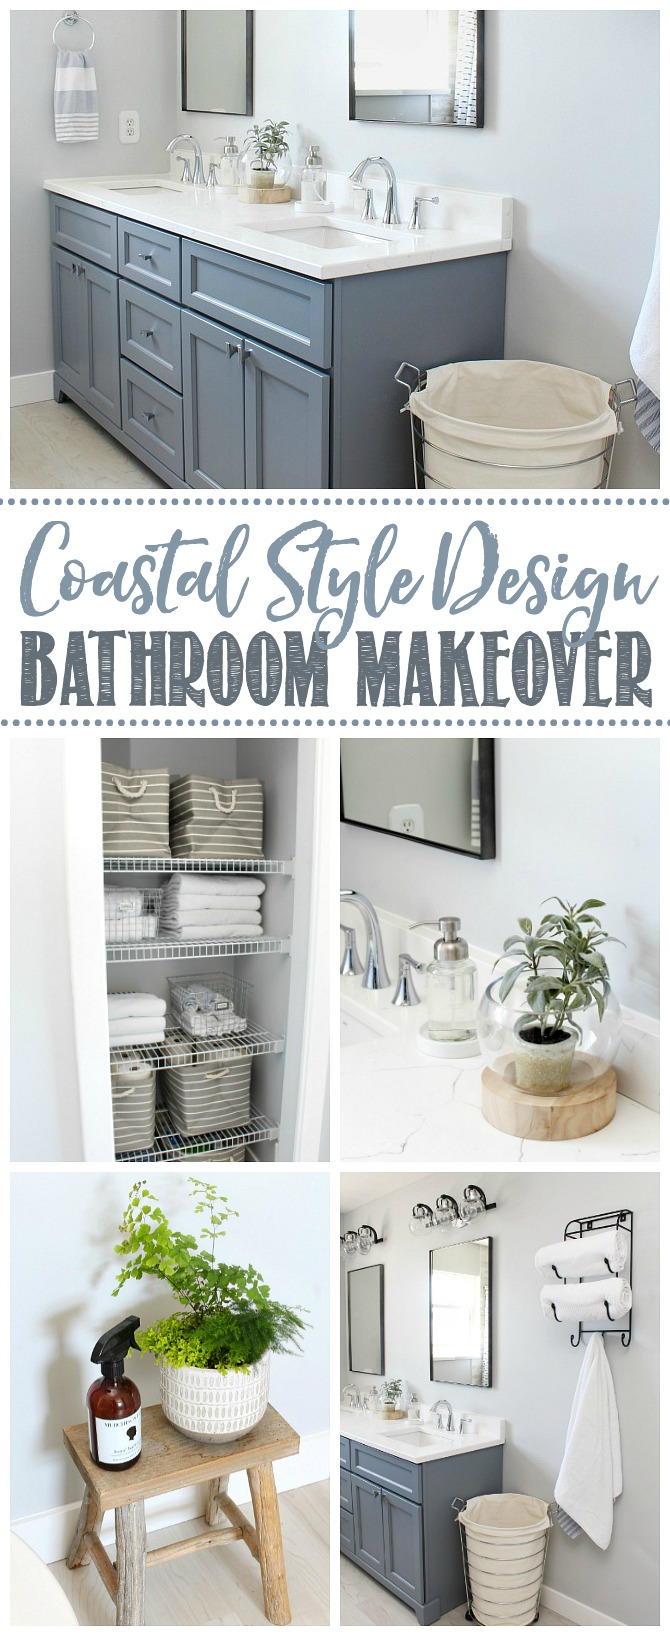 Collage of coastal style bathroom design and decor ideas.